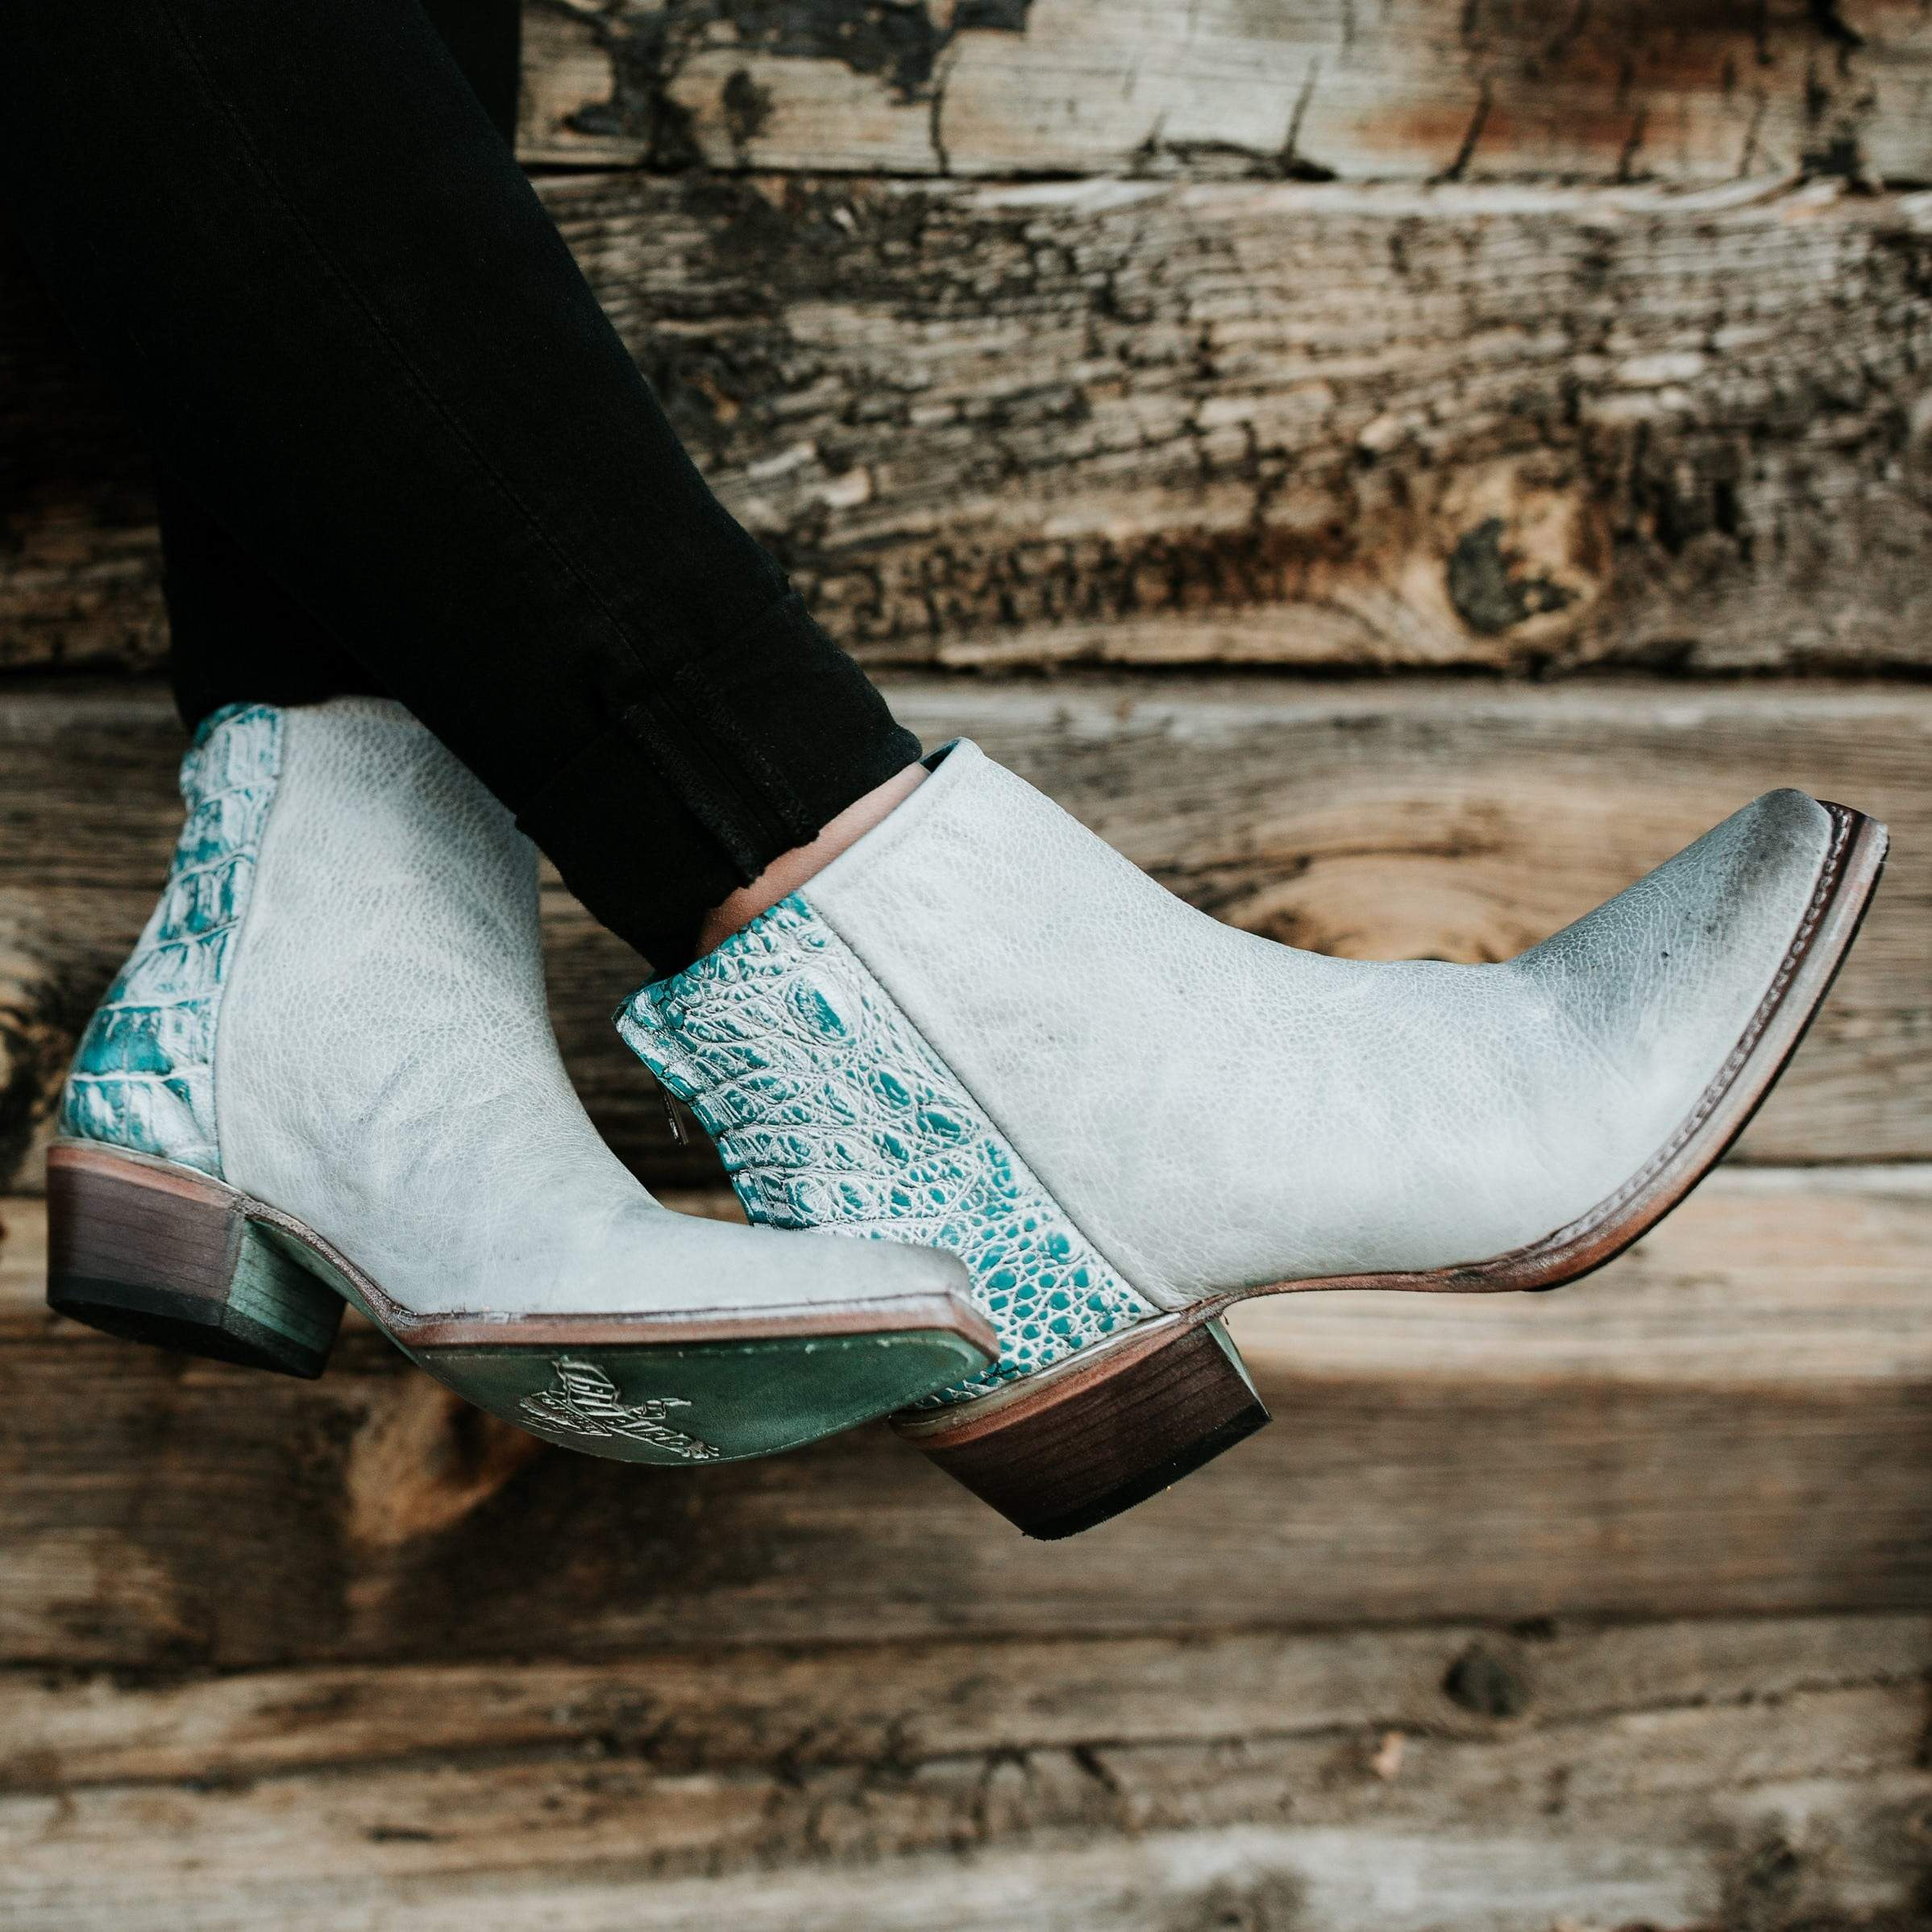 992105d02f9 Shop the RULE bootie at FreebirdStores.com. Official site for ...